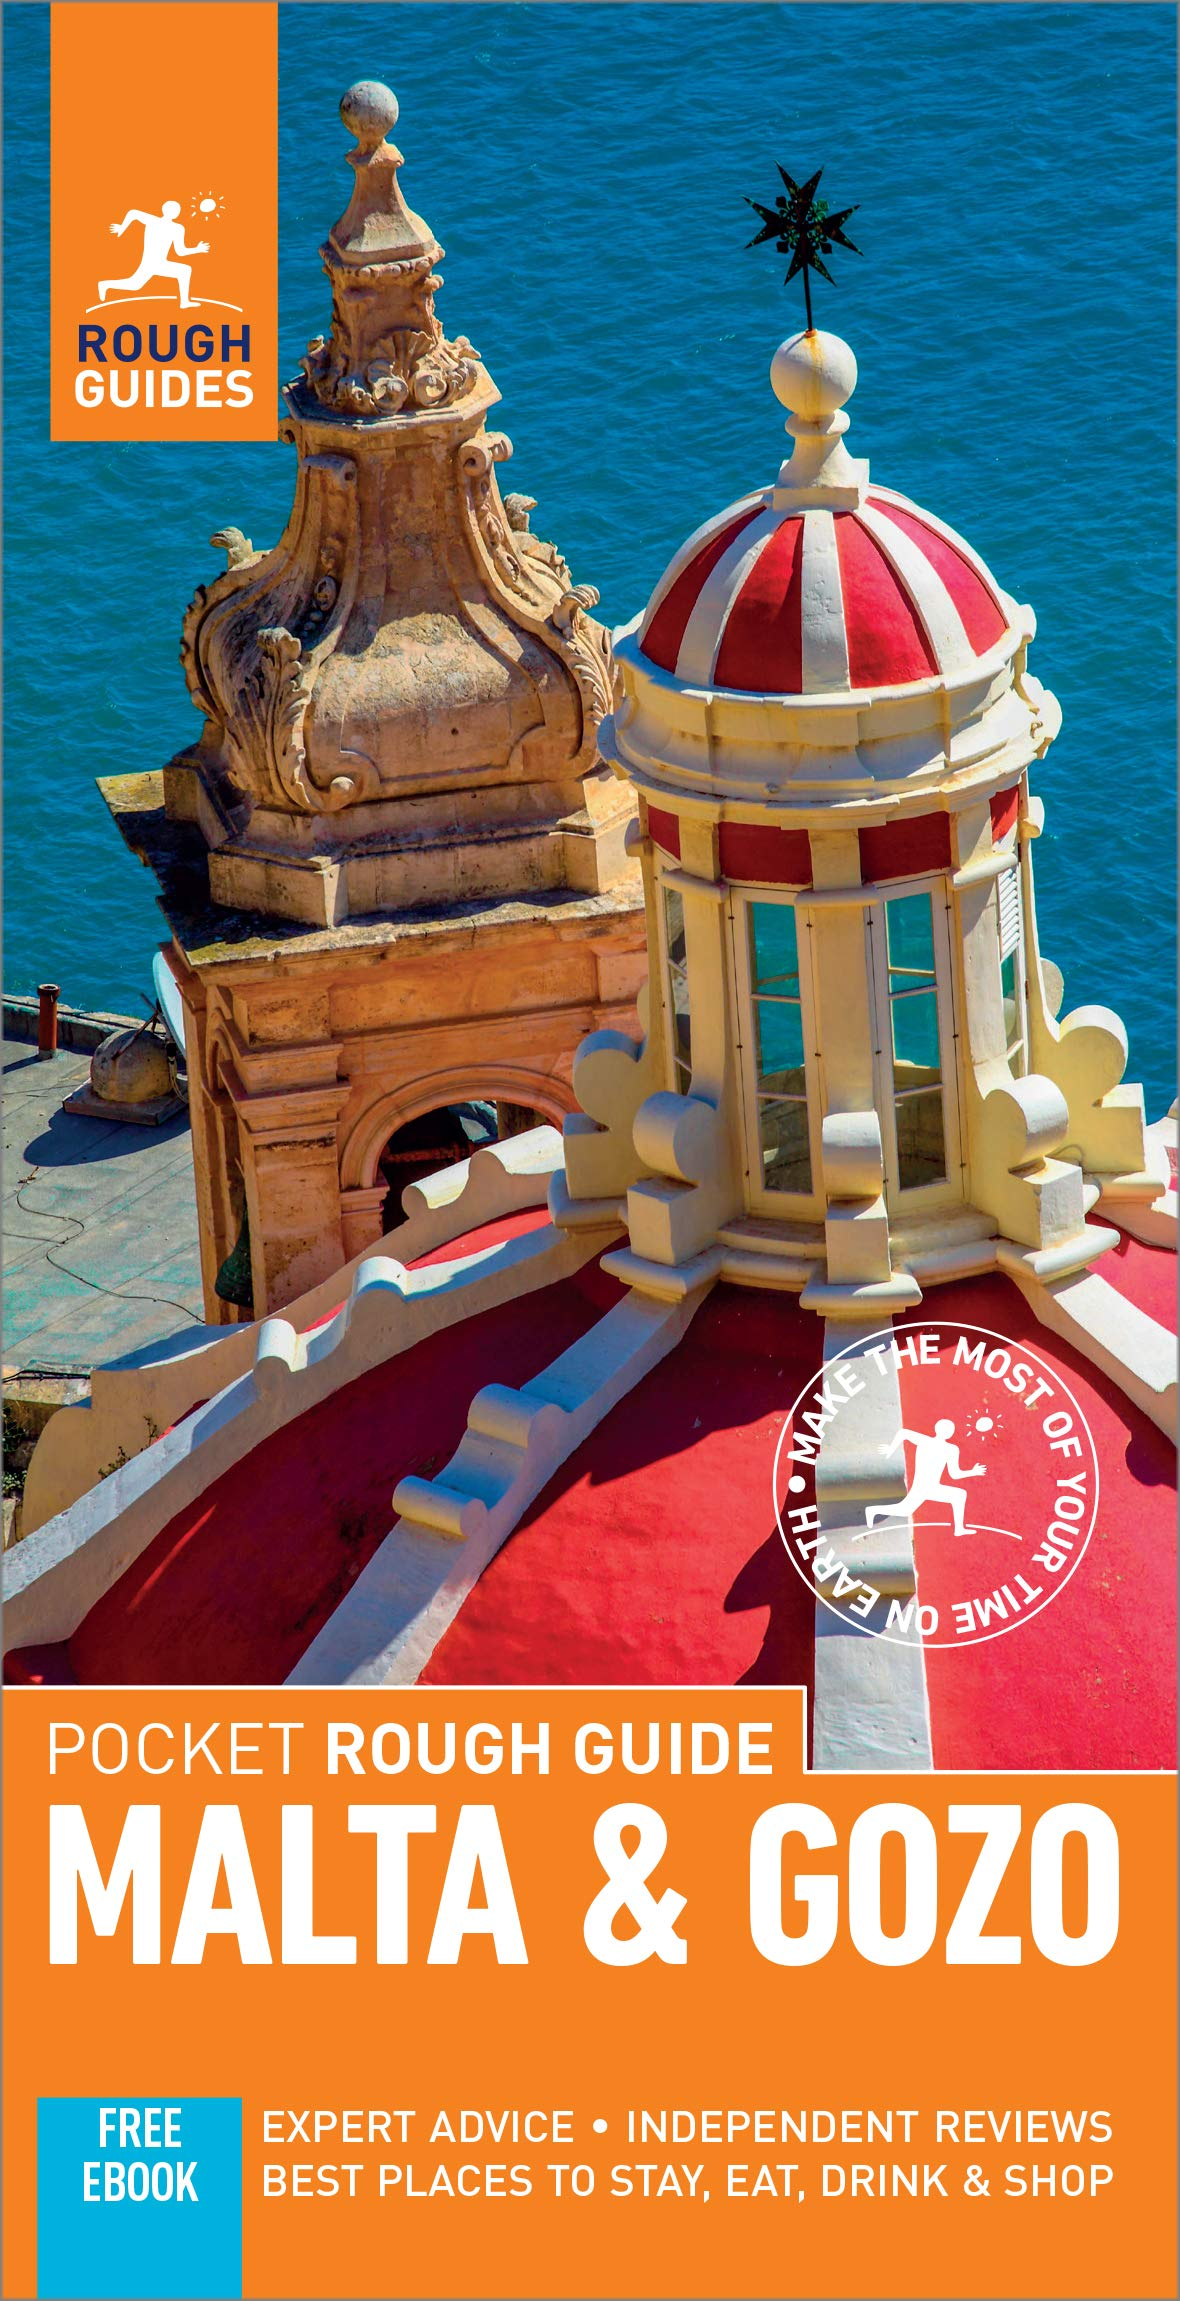 Rough Guide Pocket Malta & Gozo: expert advice - independent reviews - best places to stay, eat, drink & shop Rough Guides Pocket: Amazon.es: Guides, Rough, Gerrow, Jess: Libros en idiomas extranjeros